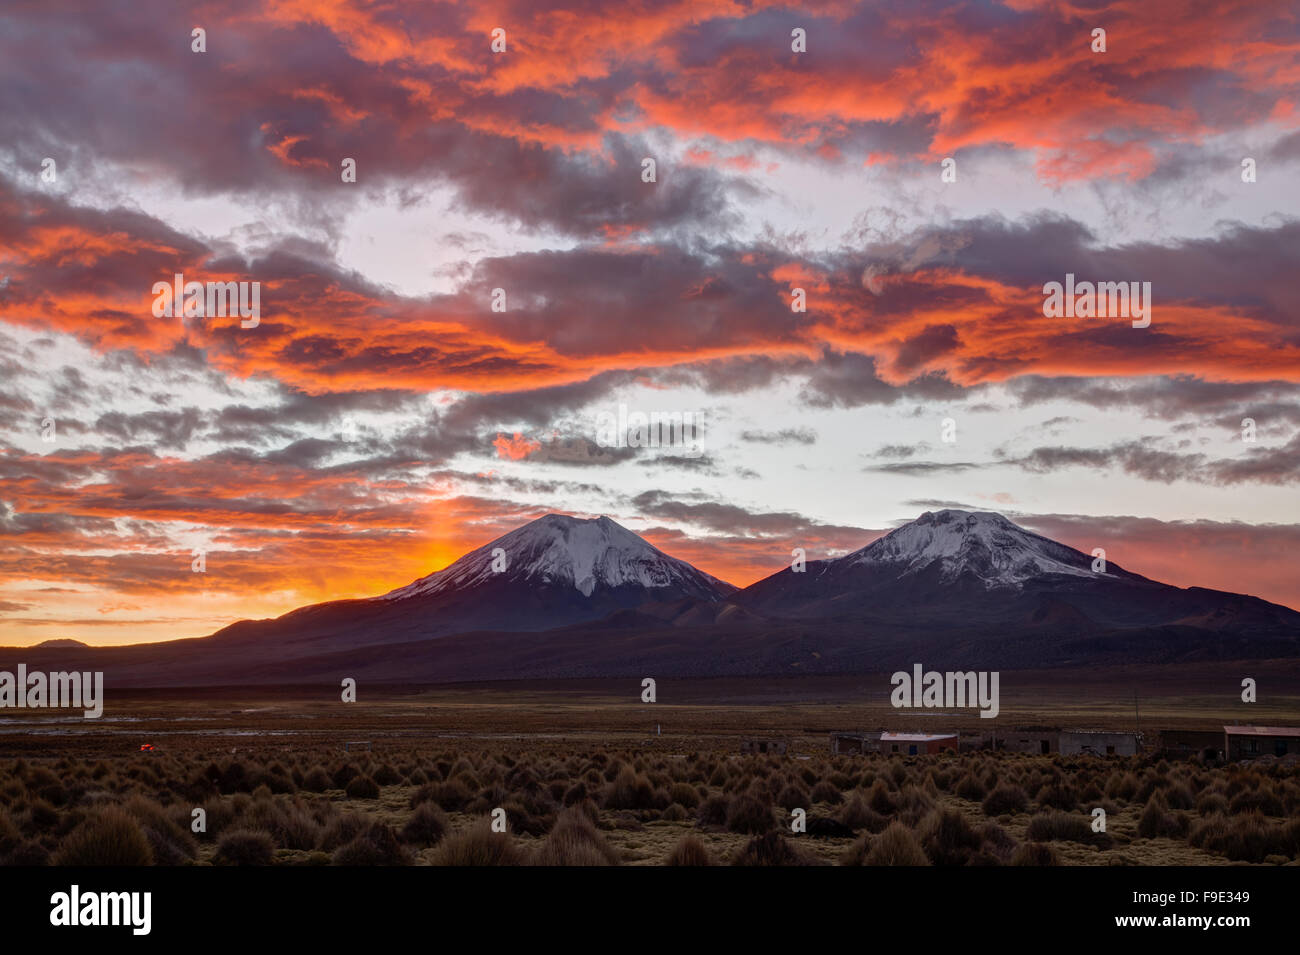 Photograph of a beautiful sunset in Sajama National Park, Bolivia. - Stock Image